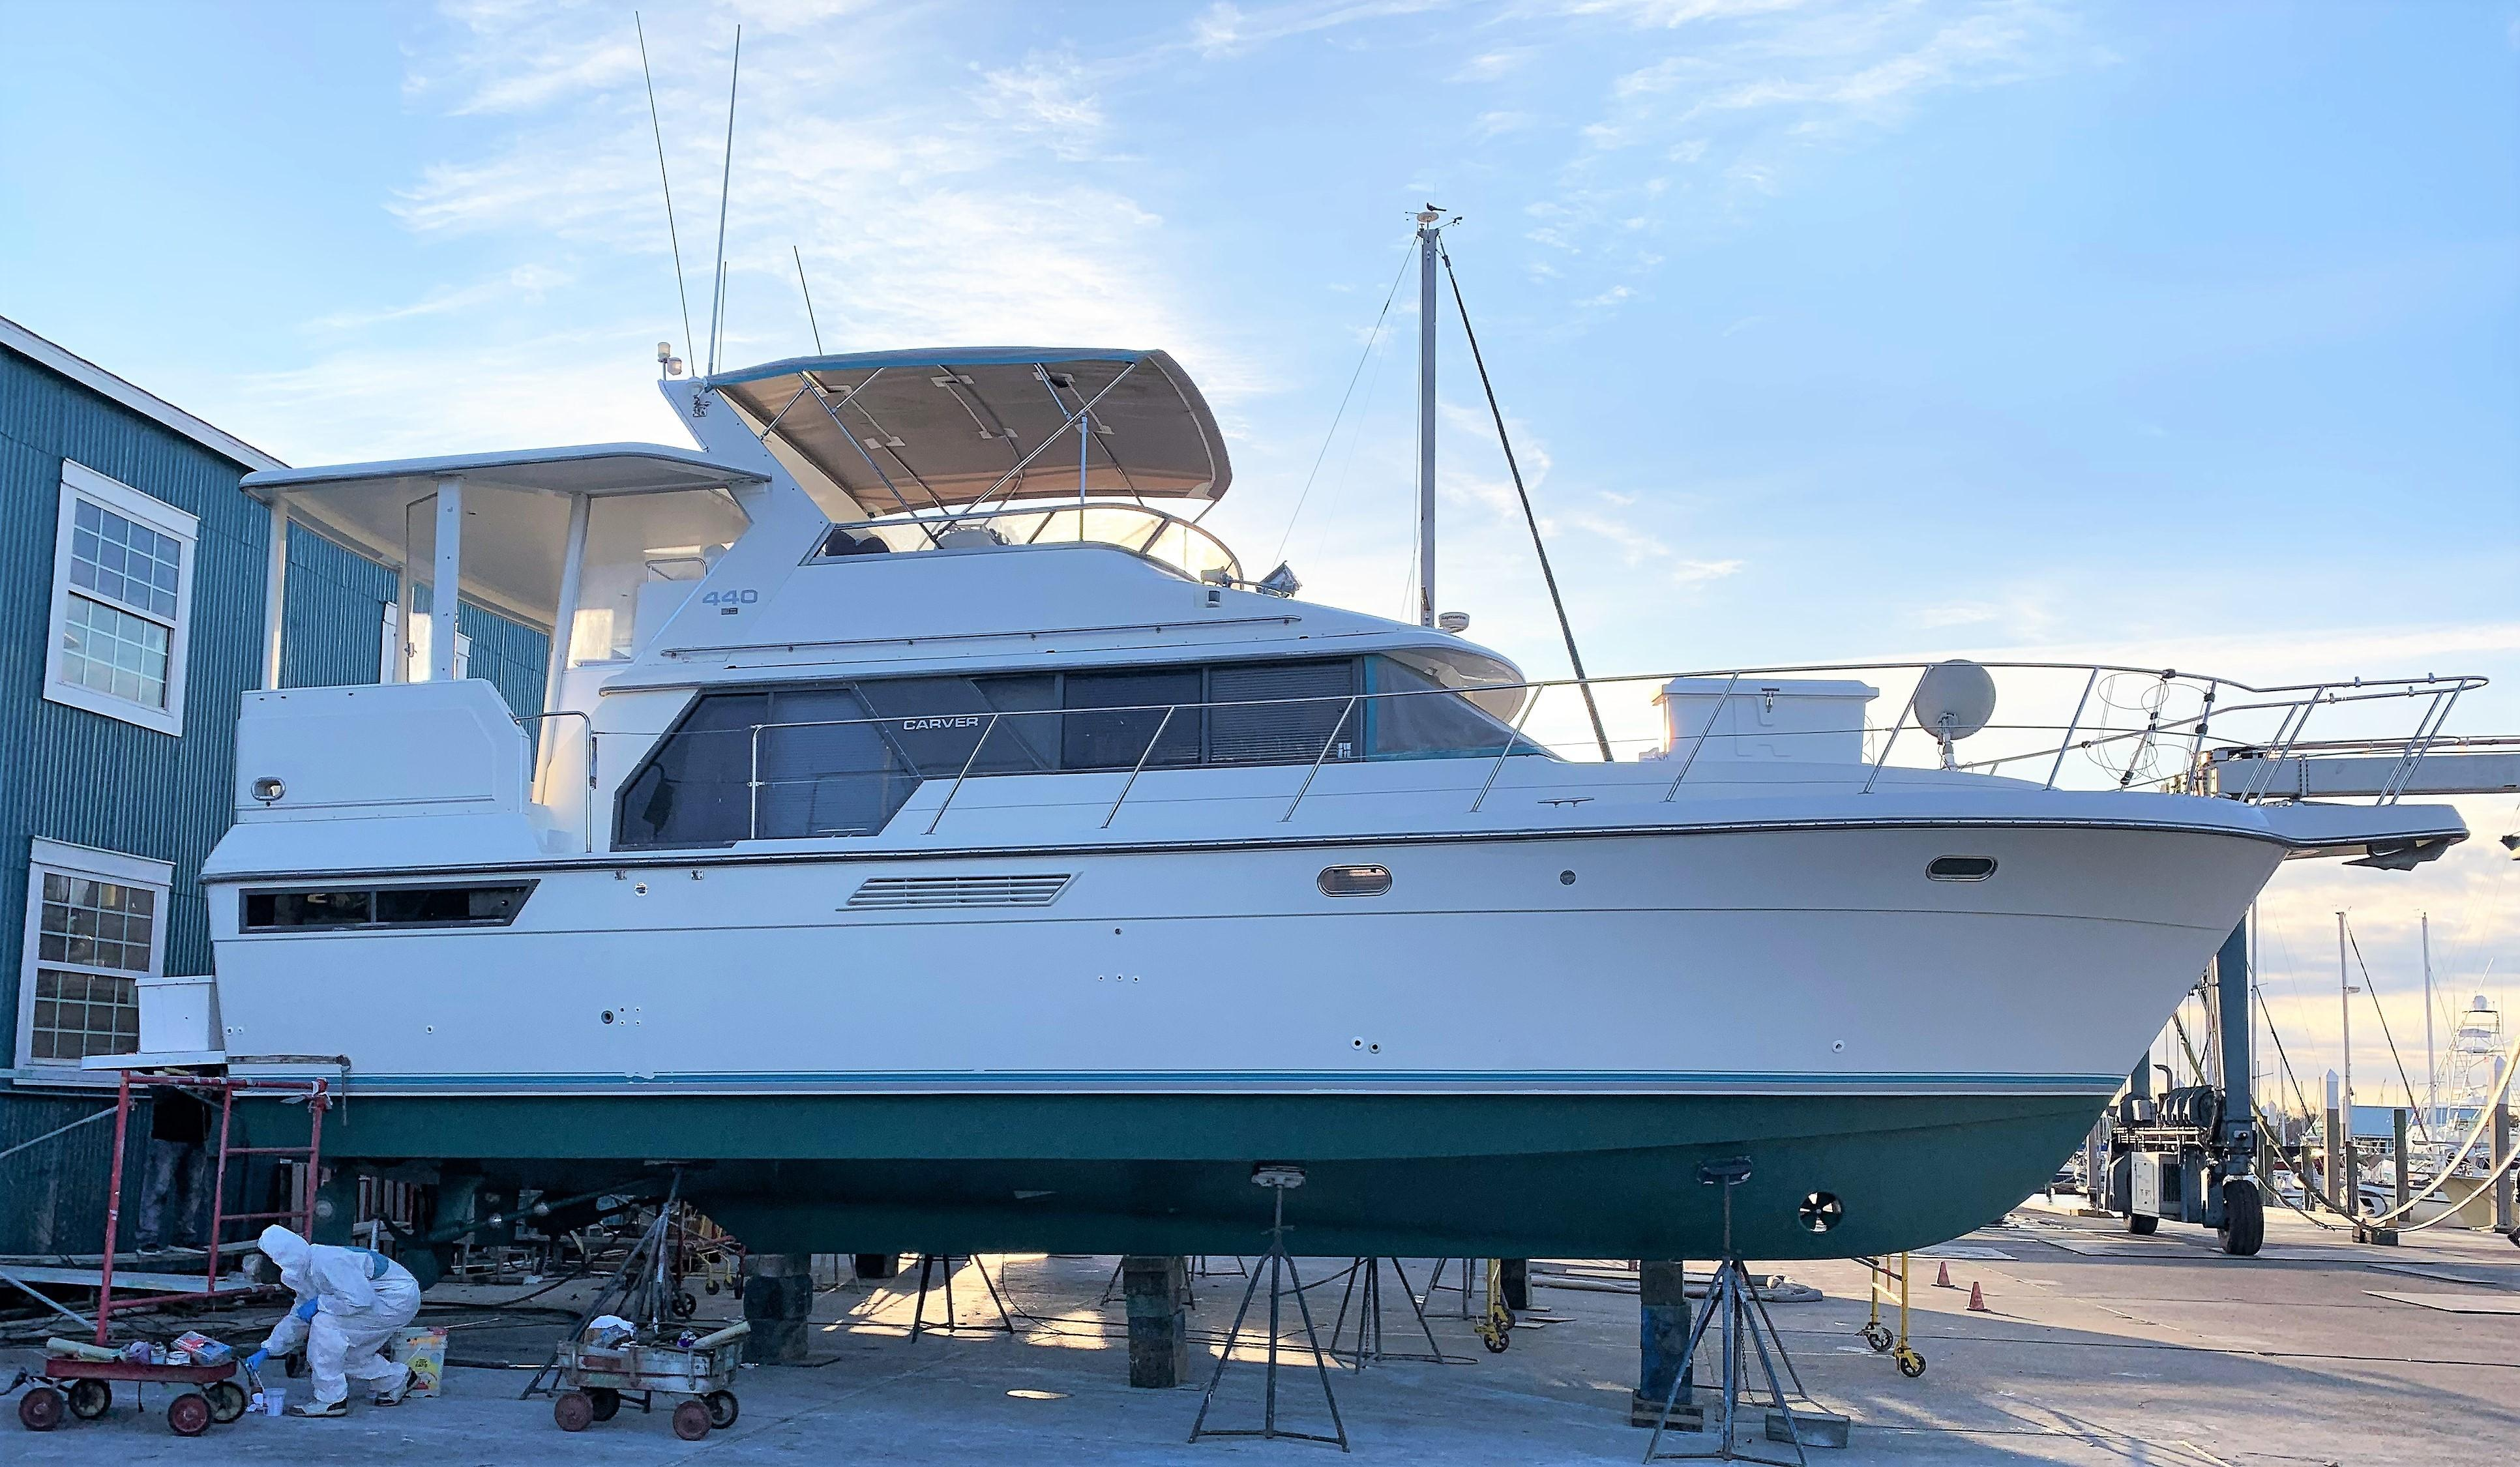 1995 Carver 440 Aft Cabin Motor Yacht, Kemah Texas - boats com